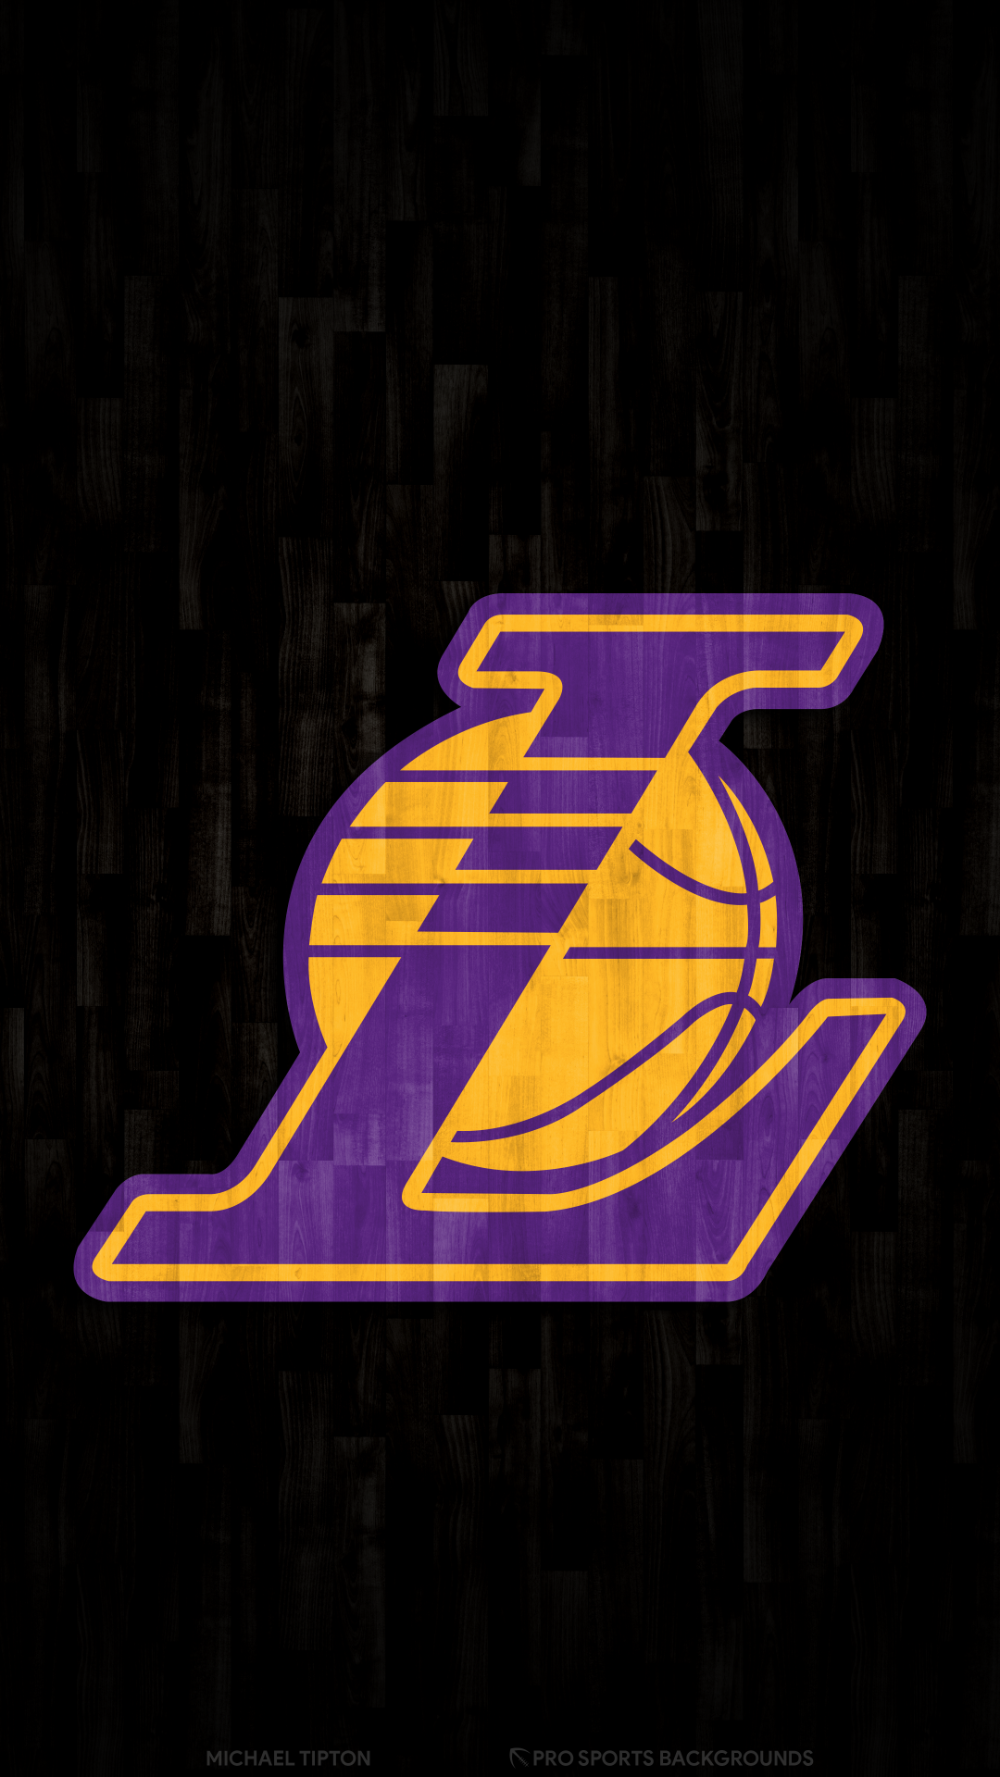 Los Angeles Lakers Wallpapers In 2020 Lakers Wallpaper Los Angeles Lakers Lakers